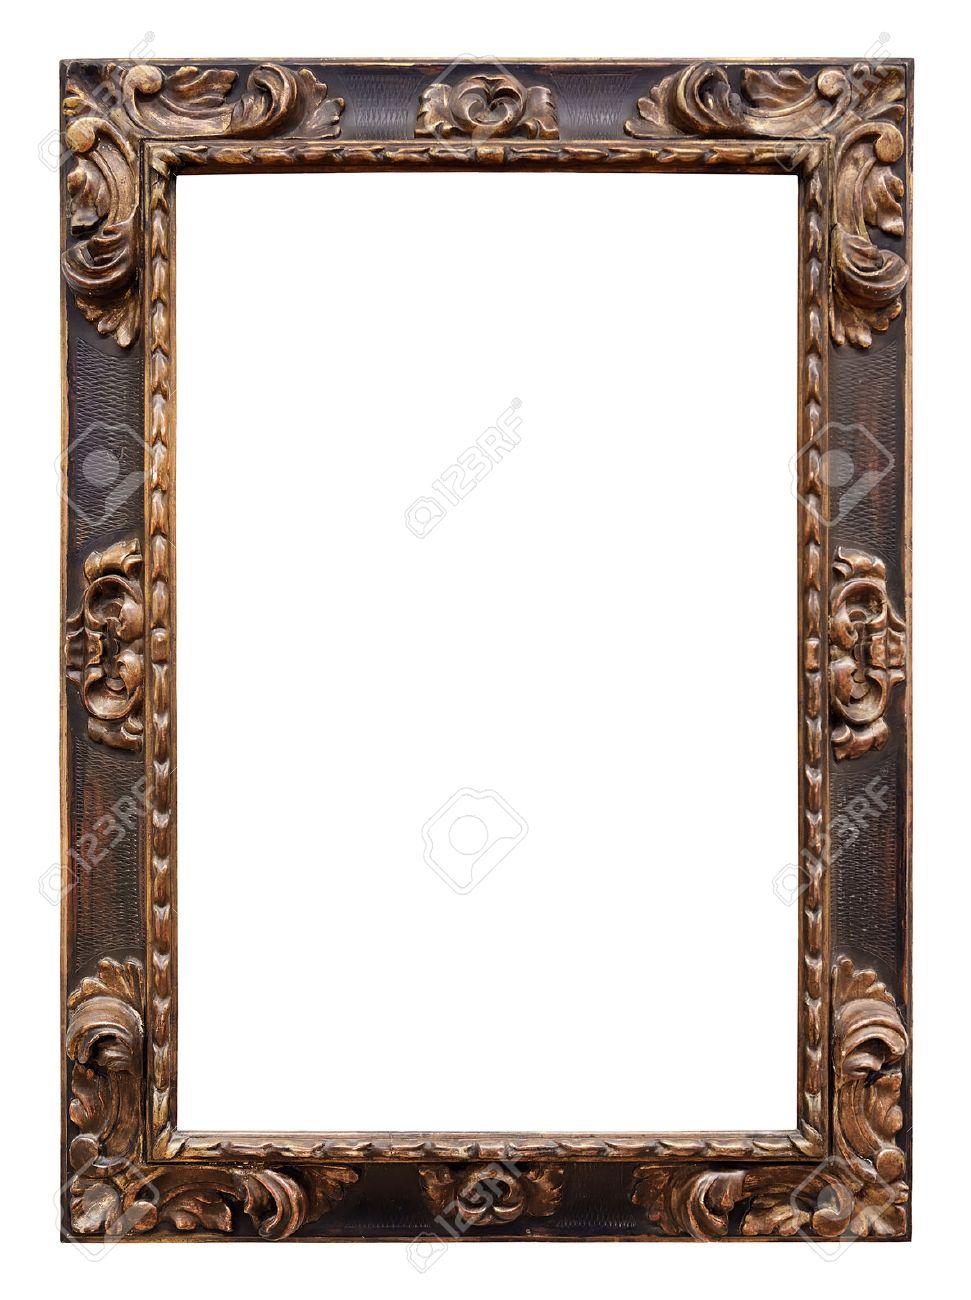 frame vintage wooden frame isolated on white background stock photo